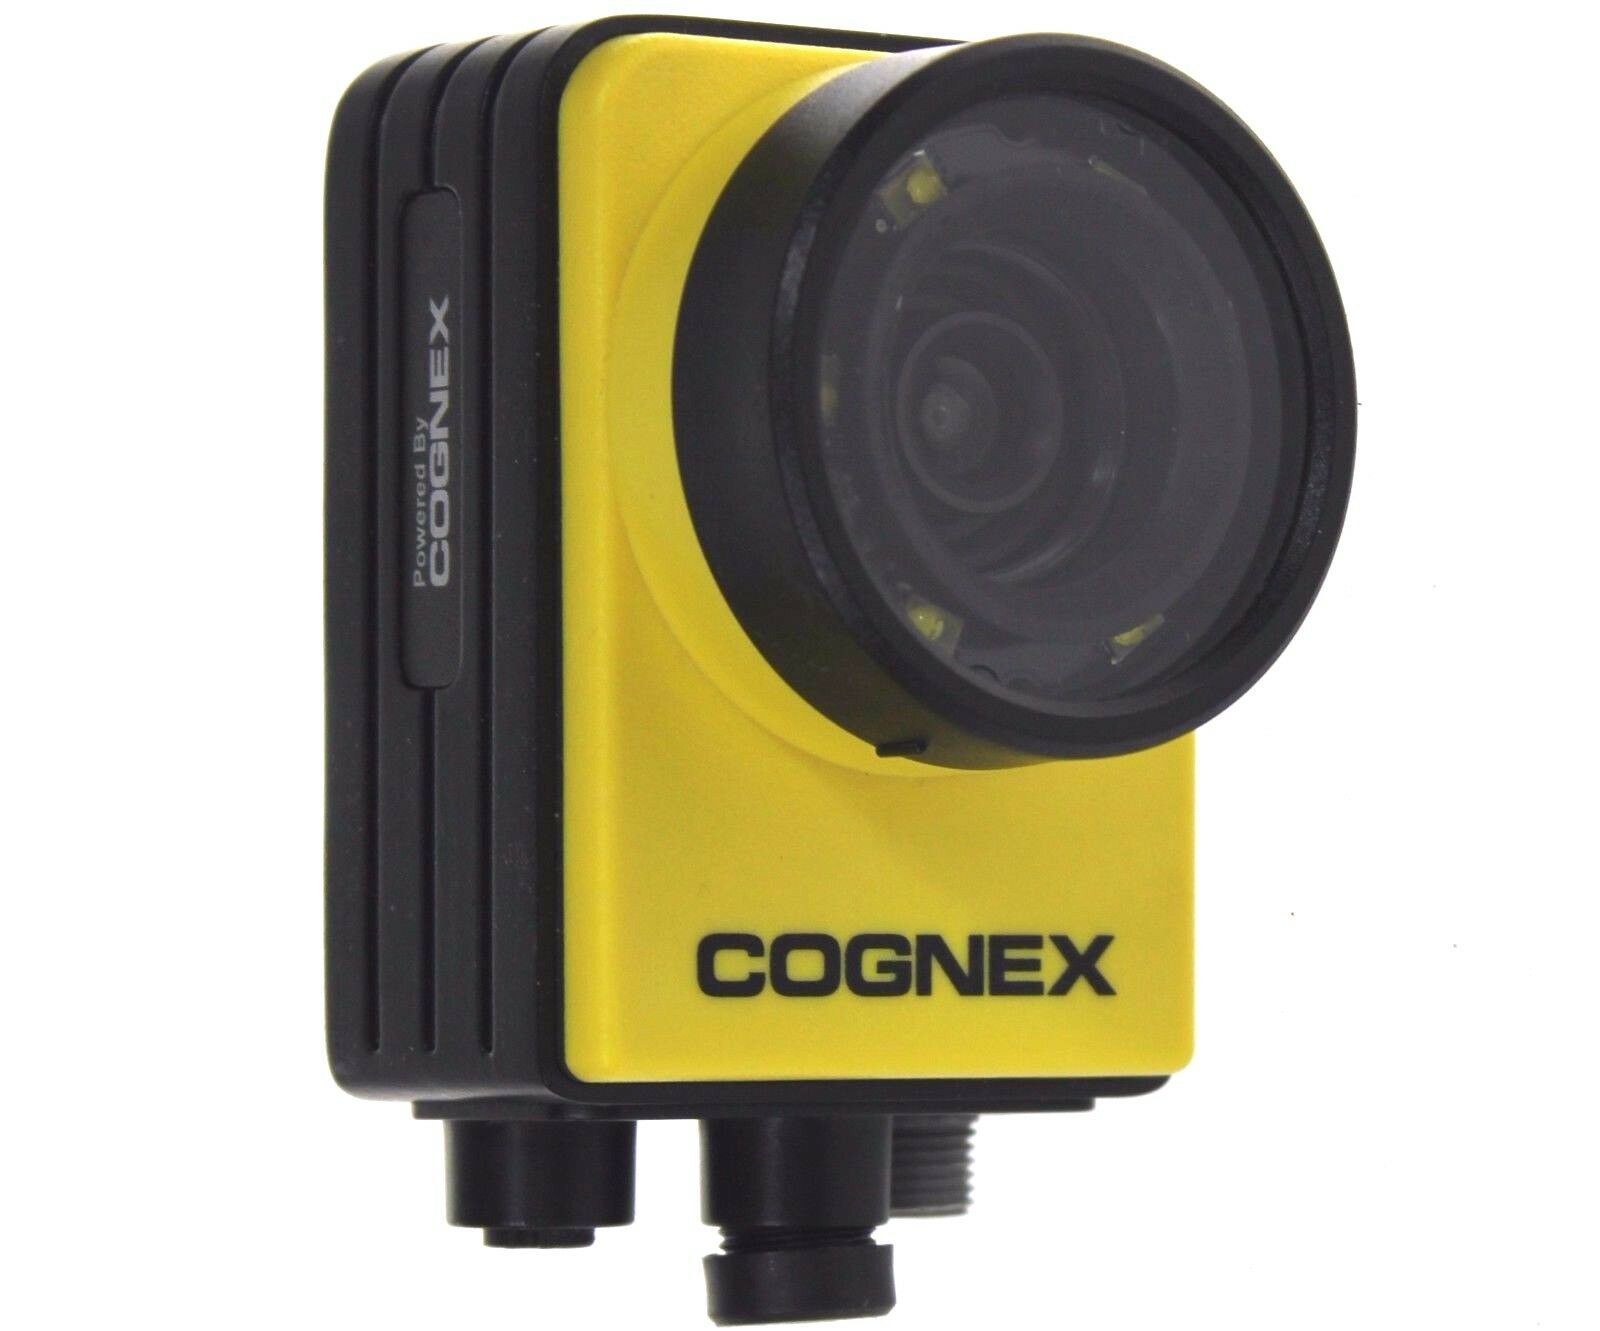 Cognex In-Sight 7000 IS7010-01 Vision System Camera